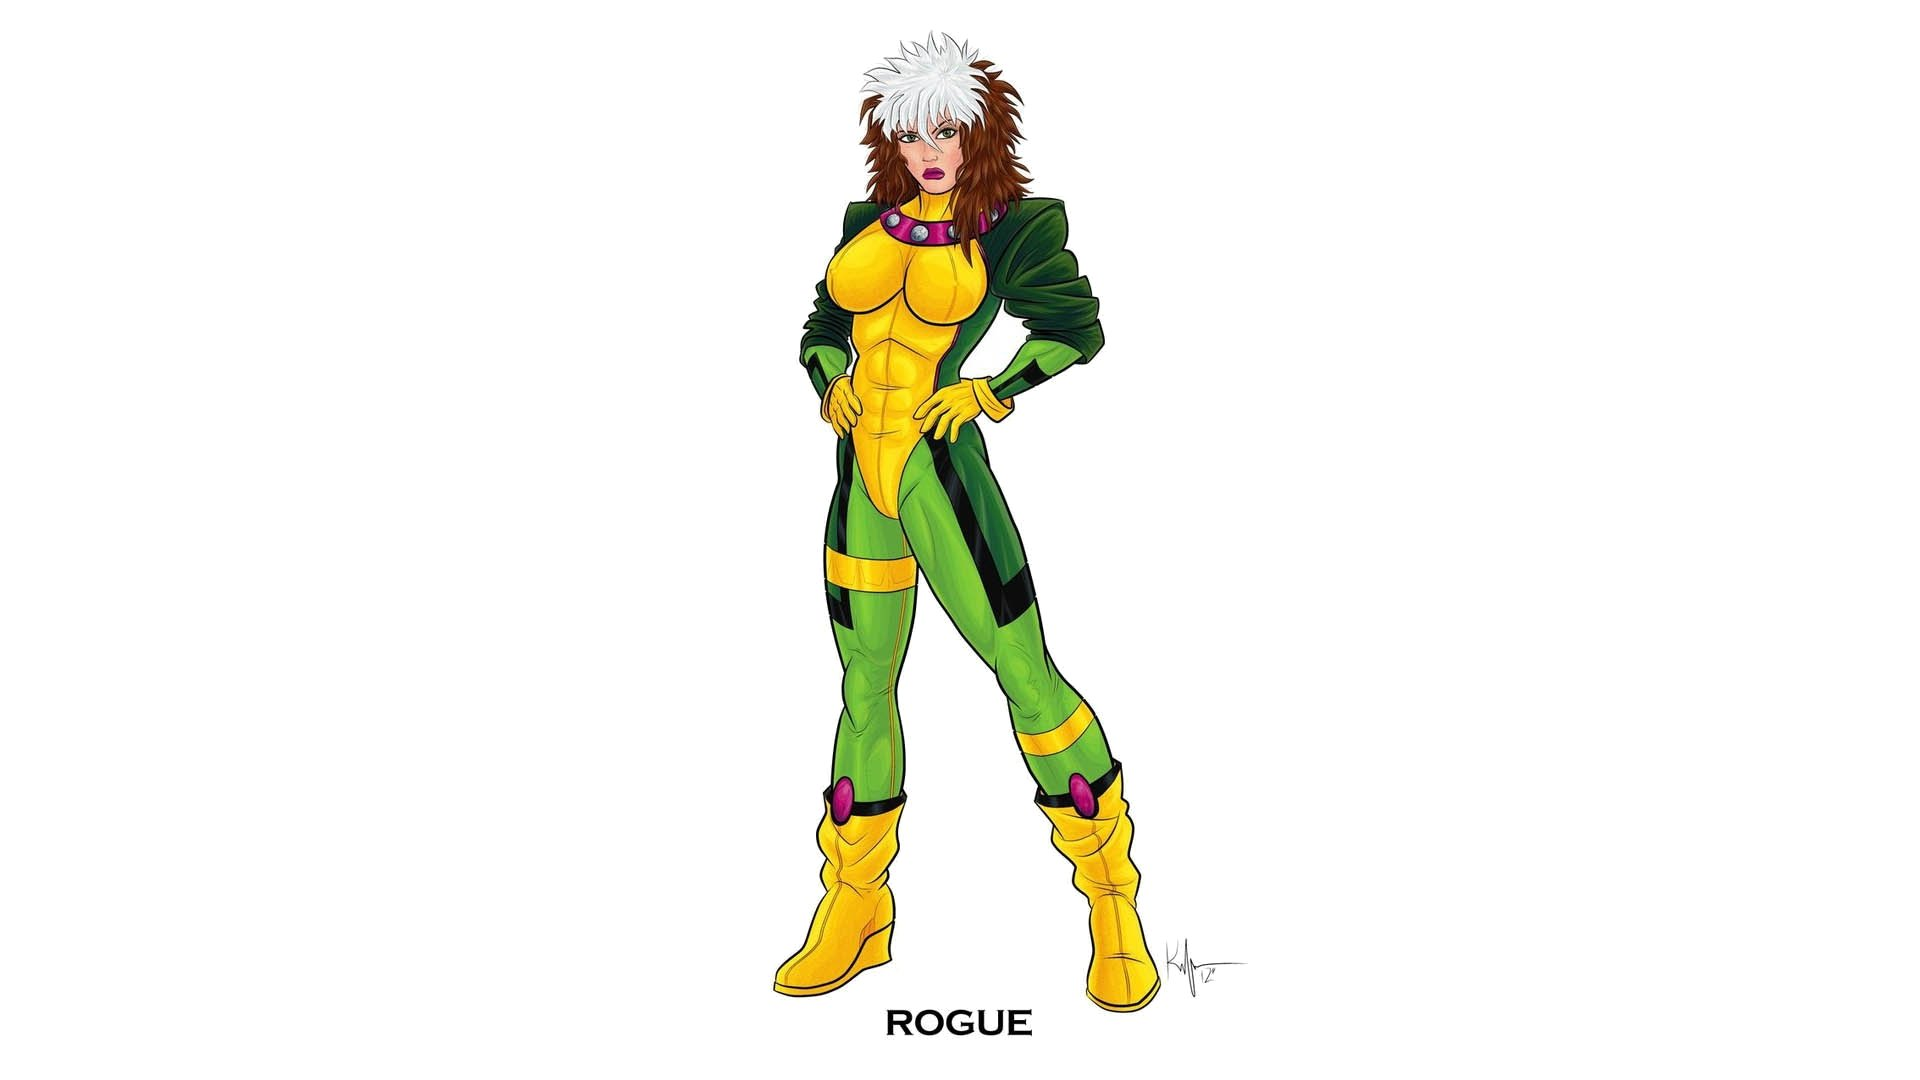 Awesome Rogue X Men Free Wallpaper Id327245 For 1080p Pc